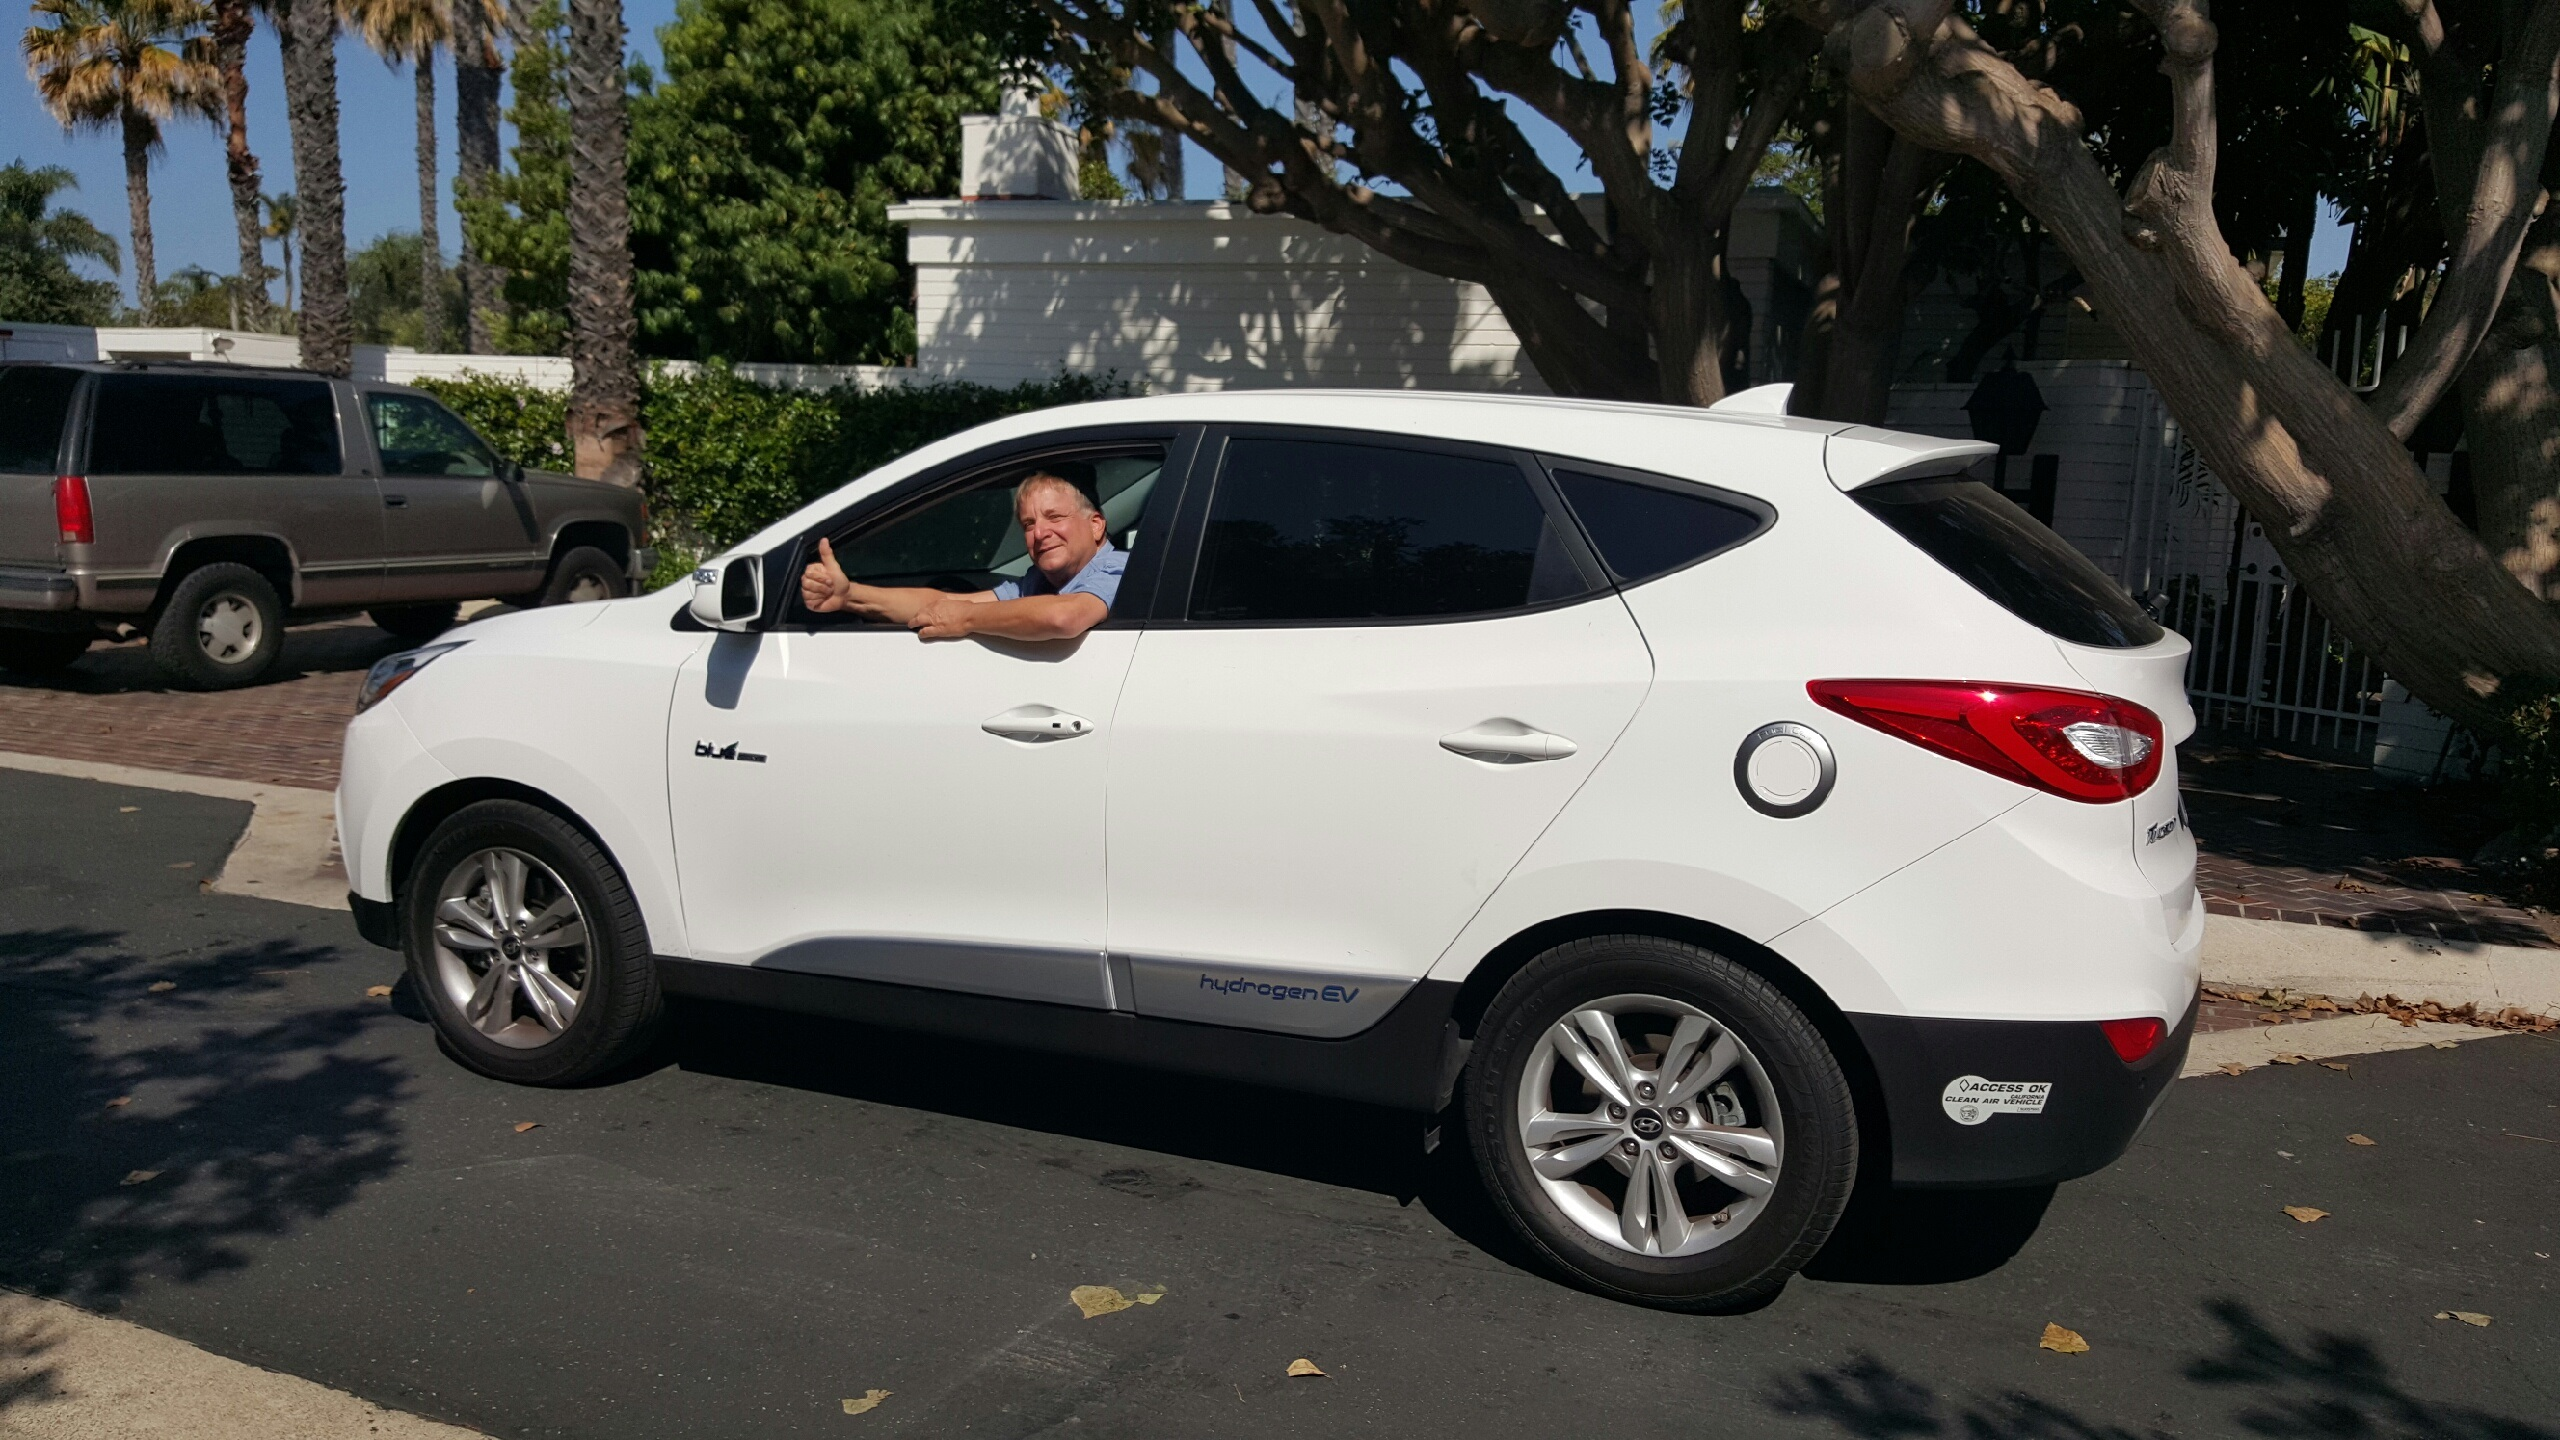 Honda Cars Of Corona >> Hyundai Tucson Fuel Cell: Early Drivers Discuss Experiences Traveling On Hydrogen